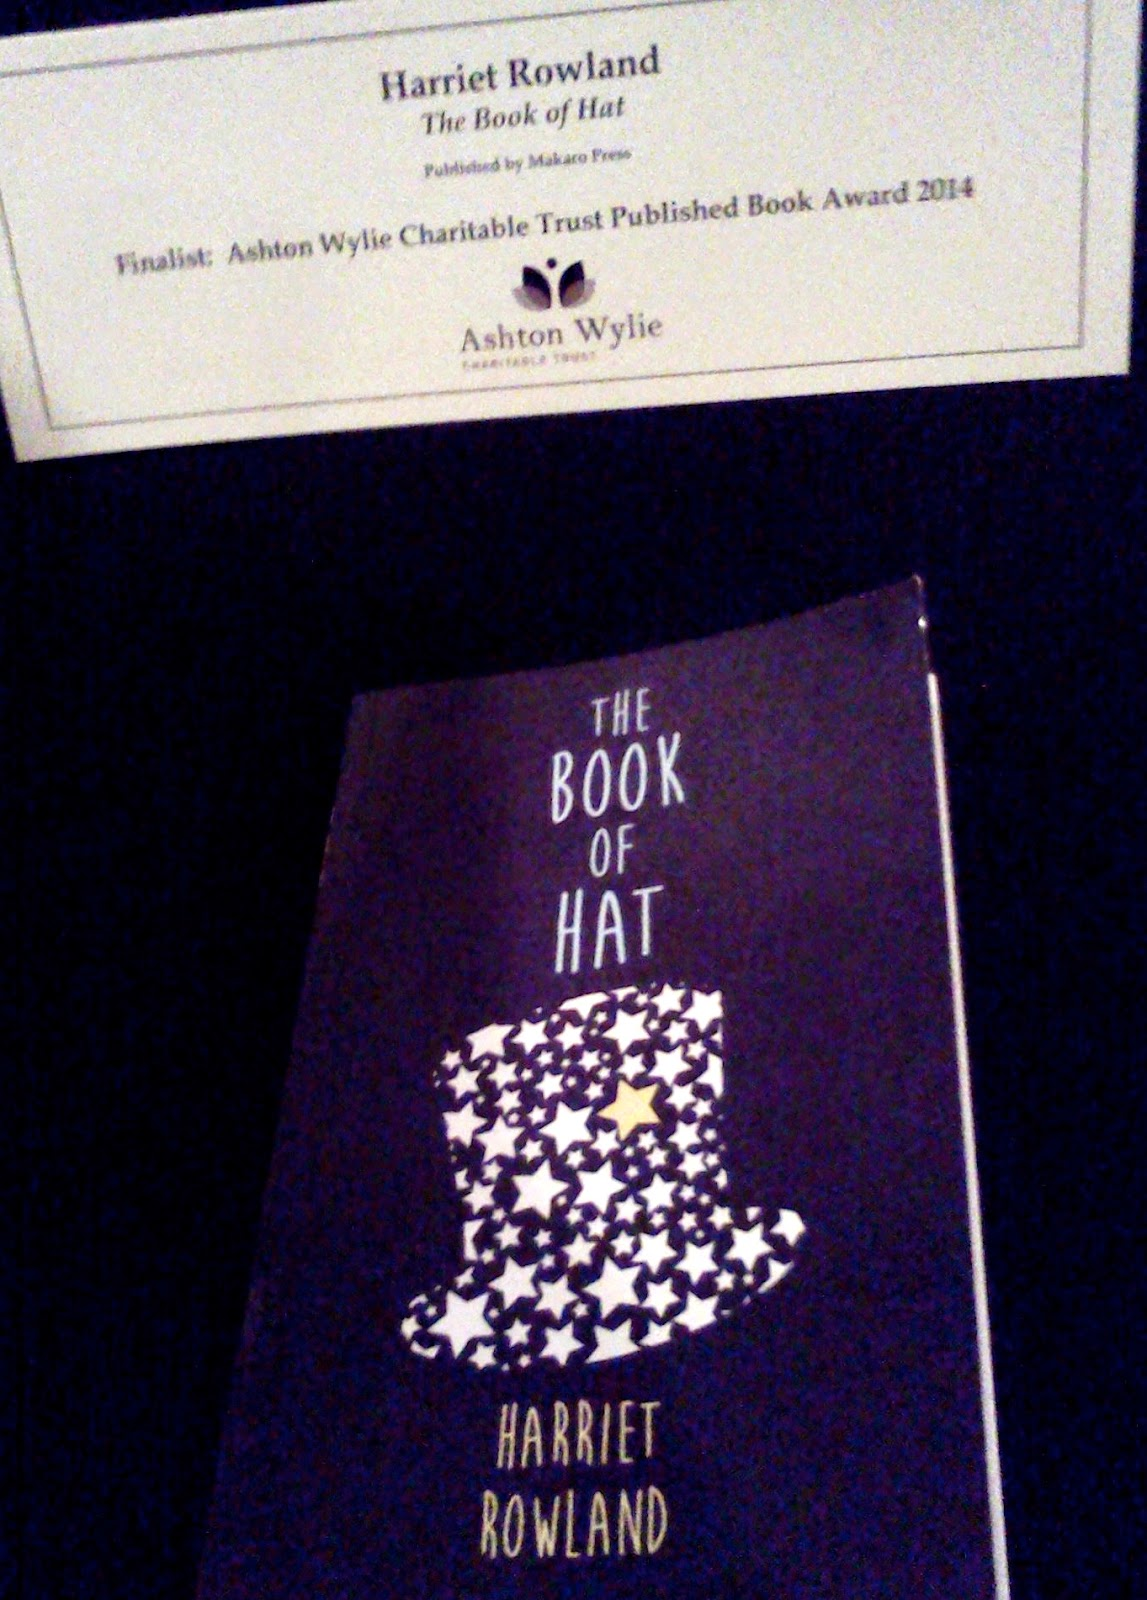 4edf5311f4d New Wellington publisher Mākaro Press is delighted to announce its indie  hit The Book of Hat by Harriet Rowland was runner-up in the prestigious  mind